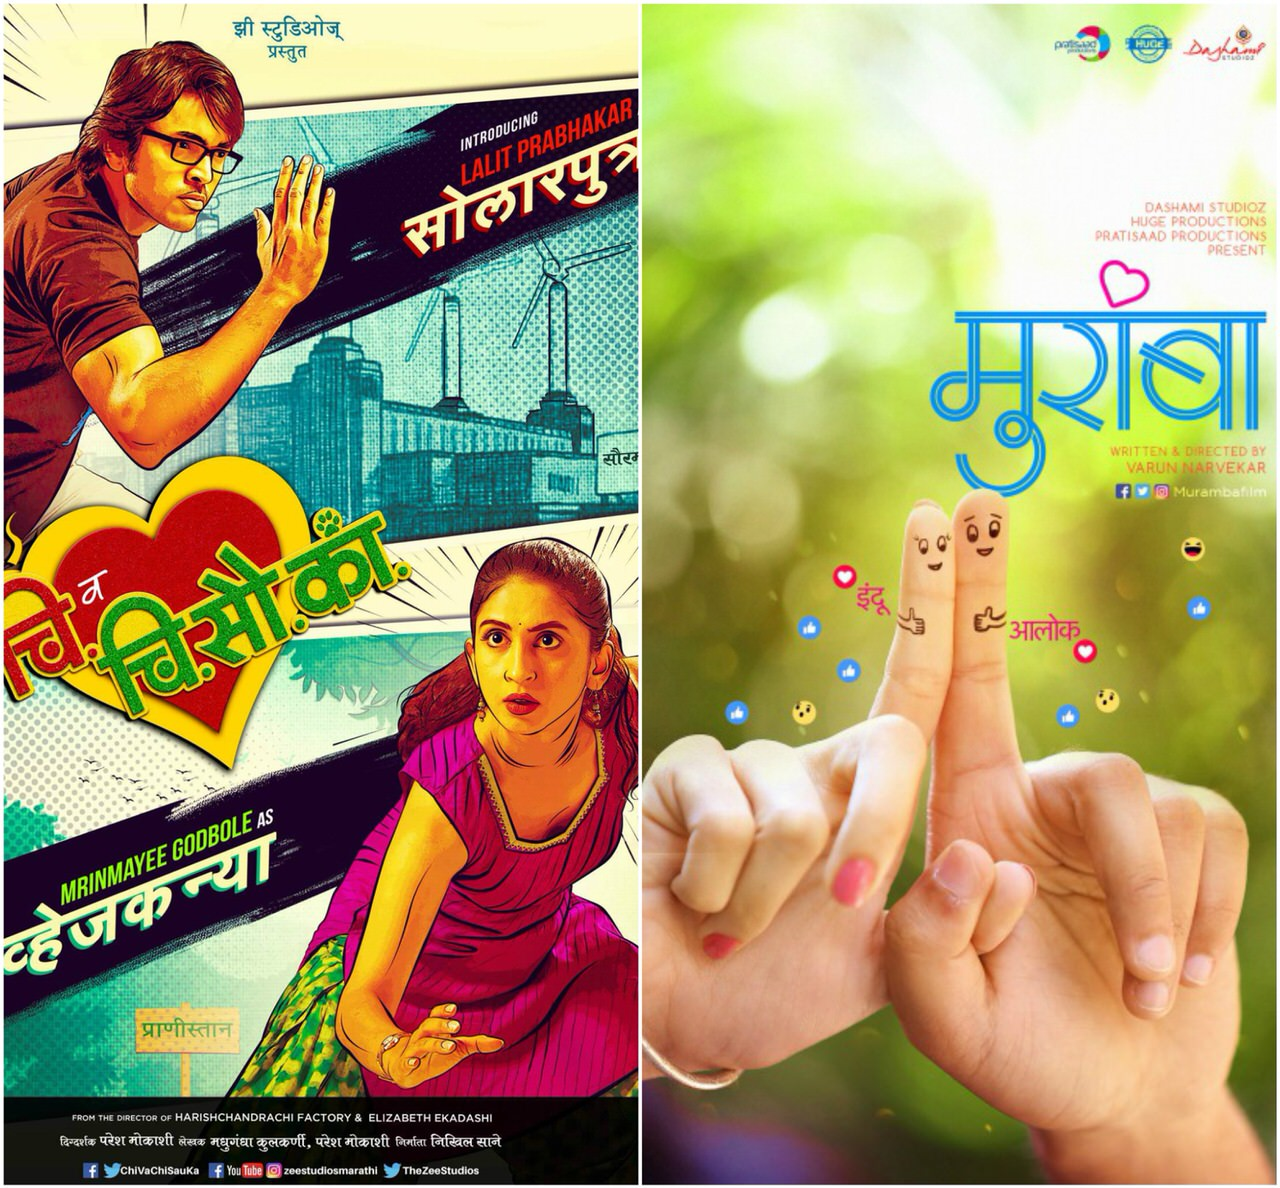 New Marathi Cinema Can Afford Modern Heroines, But Not Feminist Ones